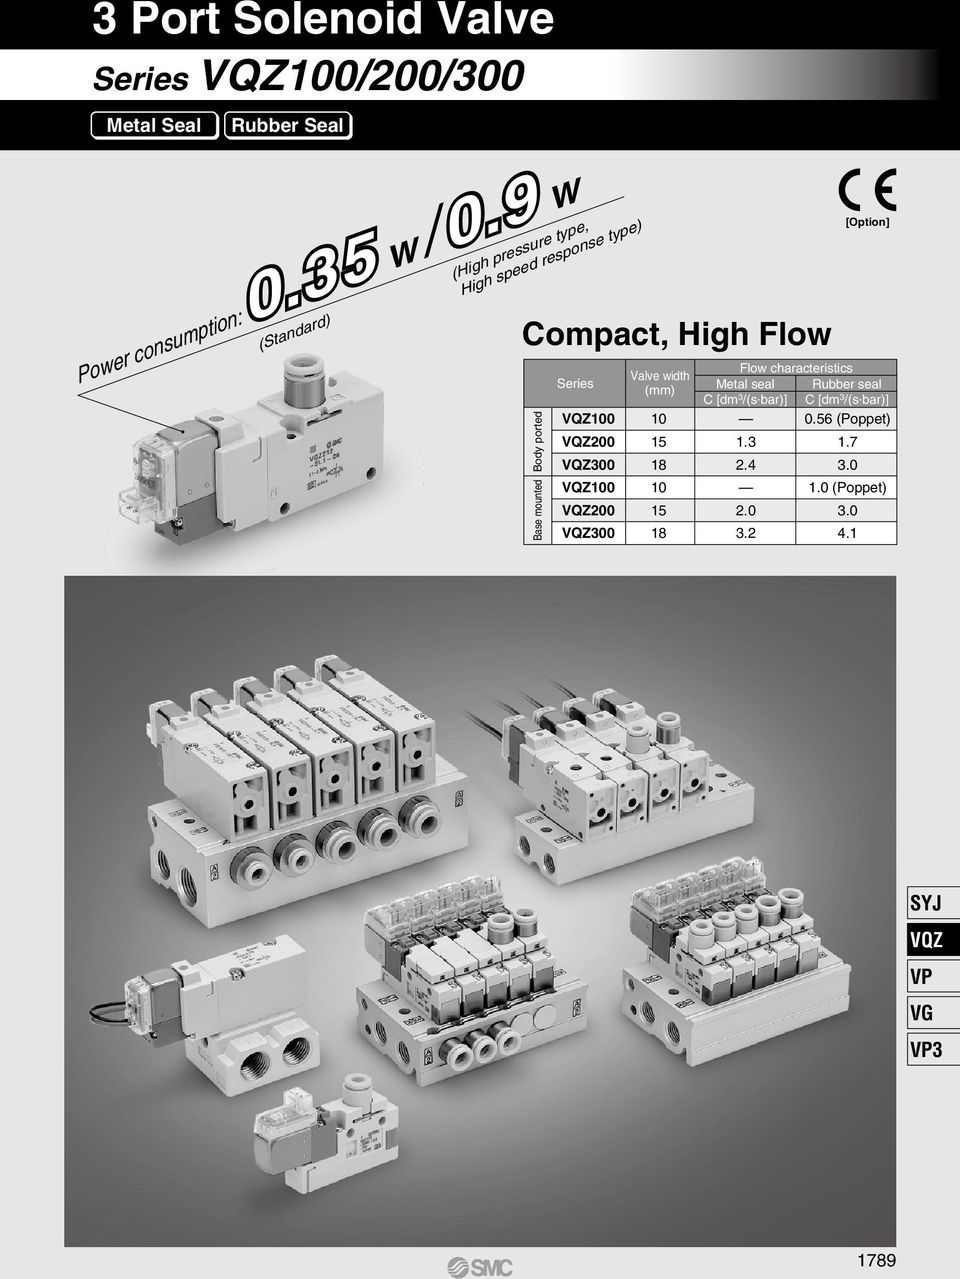 0.9 (Standard) (High pressure type, High speed response type) Power consumption: 0. W/0.